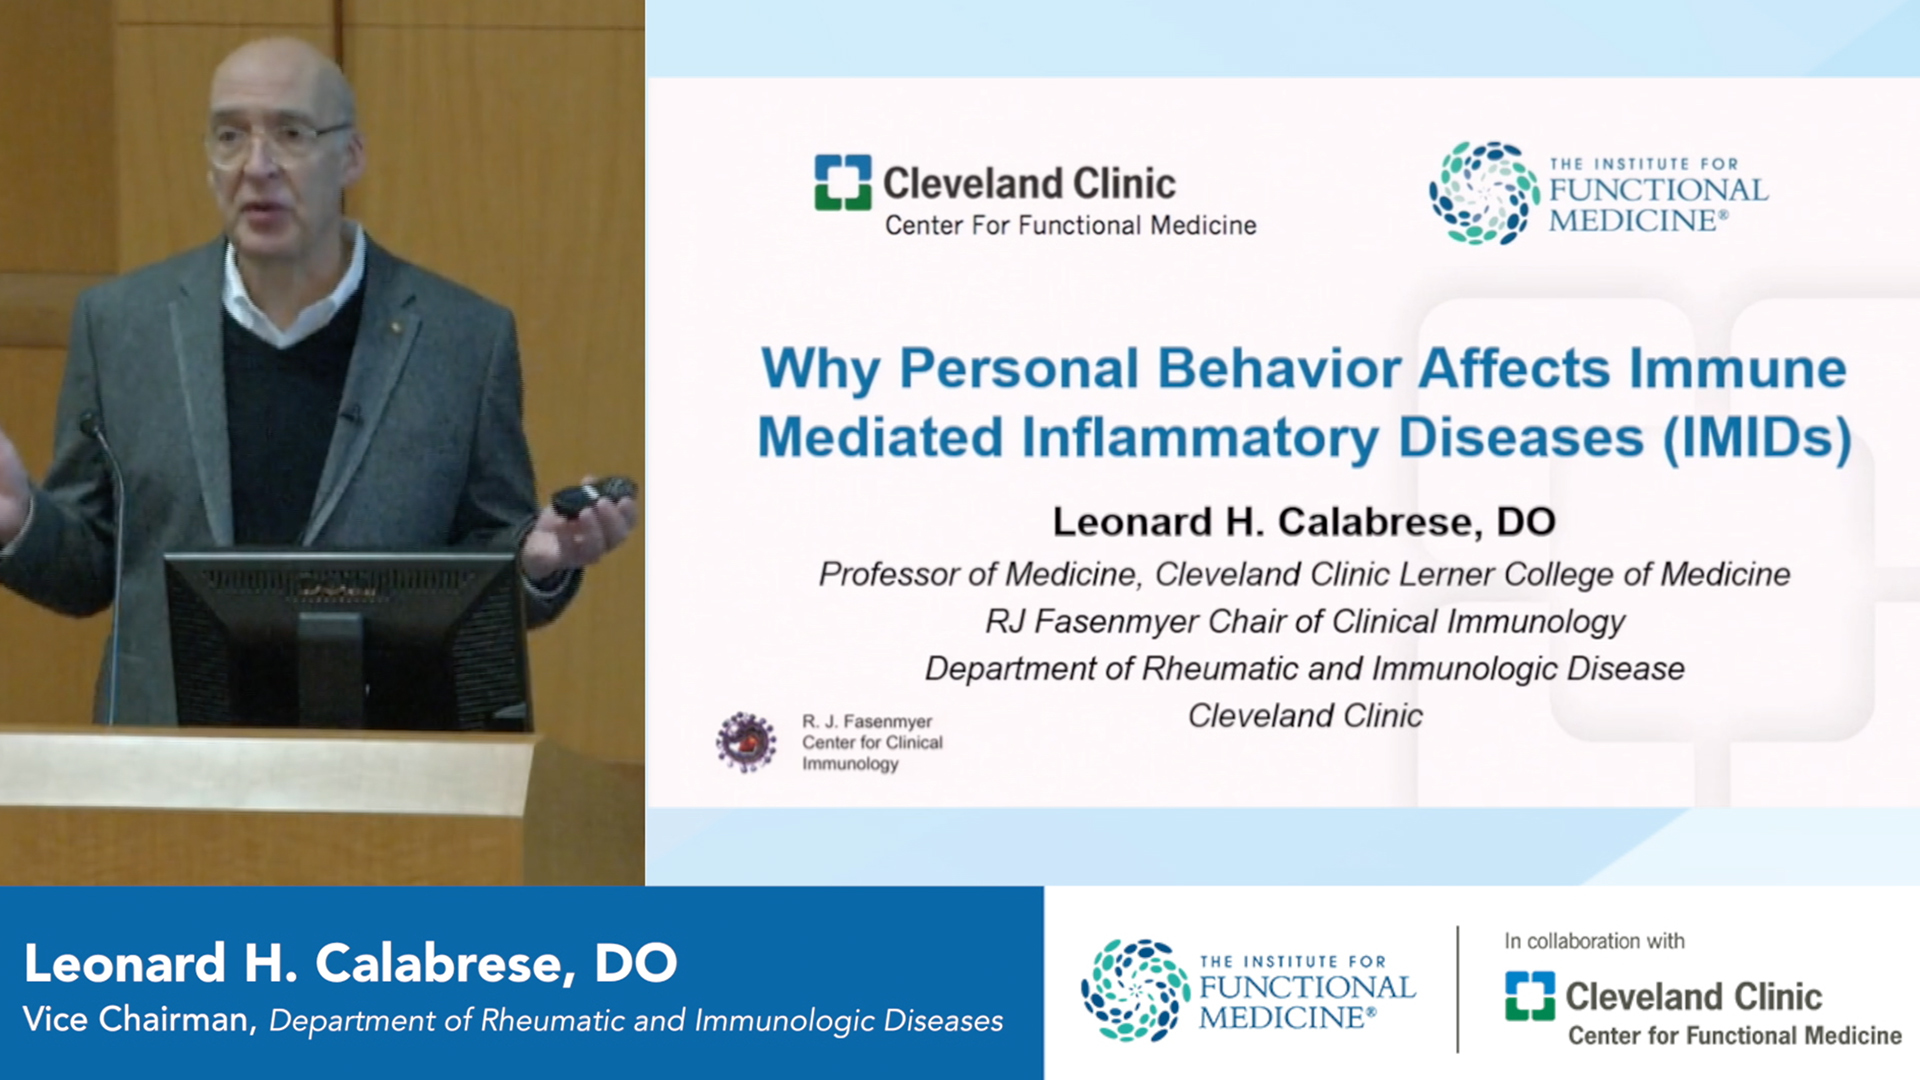 Why Personal Behavior Affects Immune Mediated Inflammatory